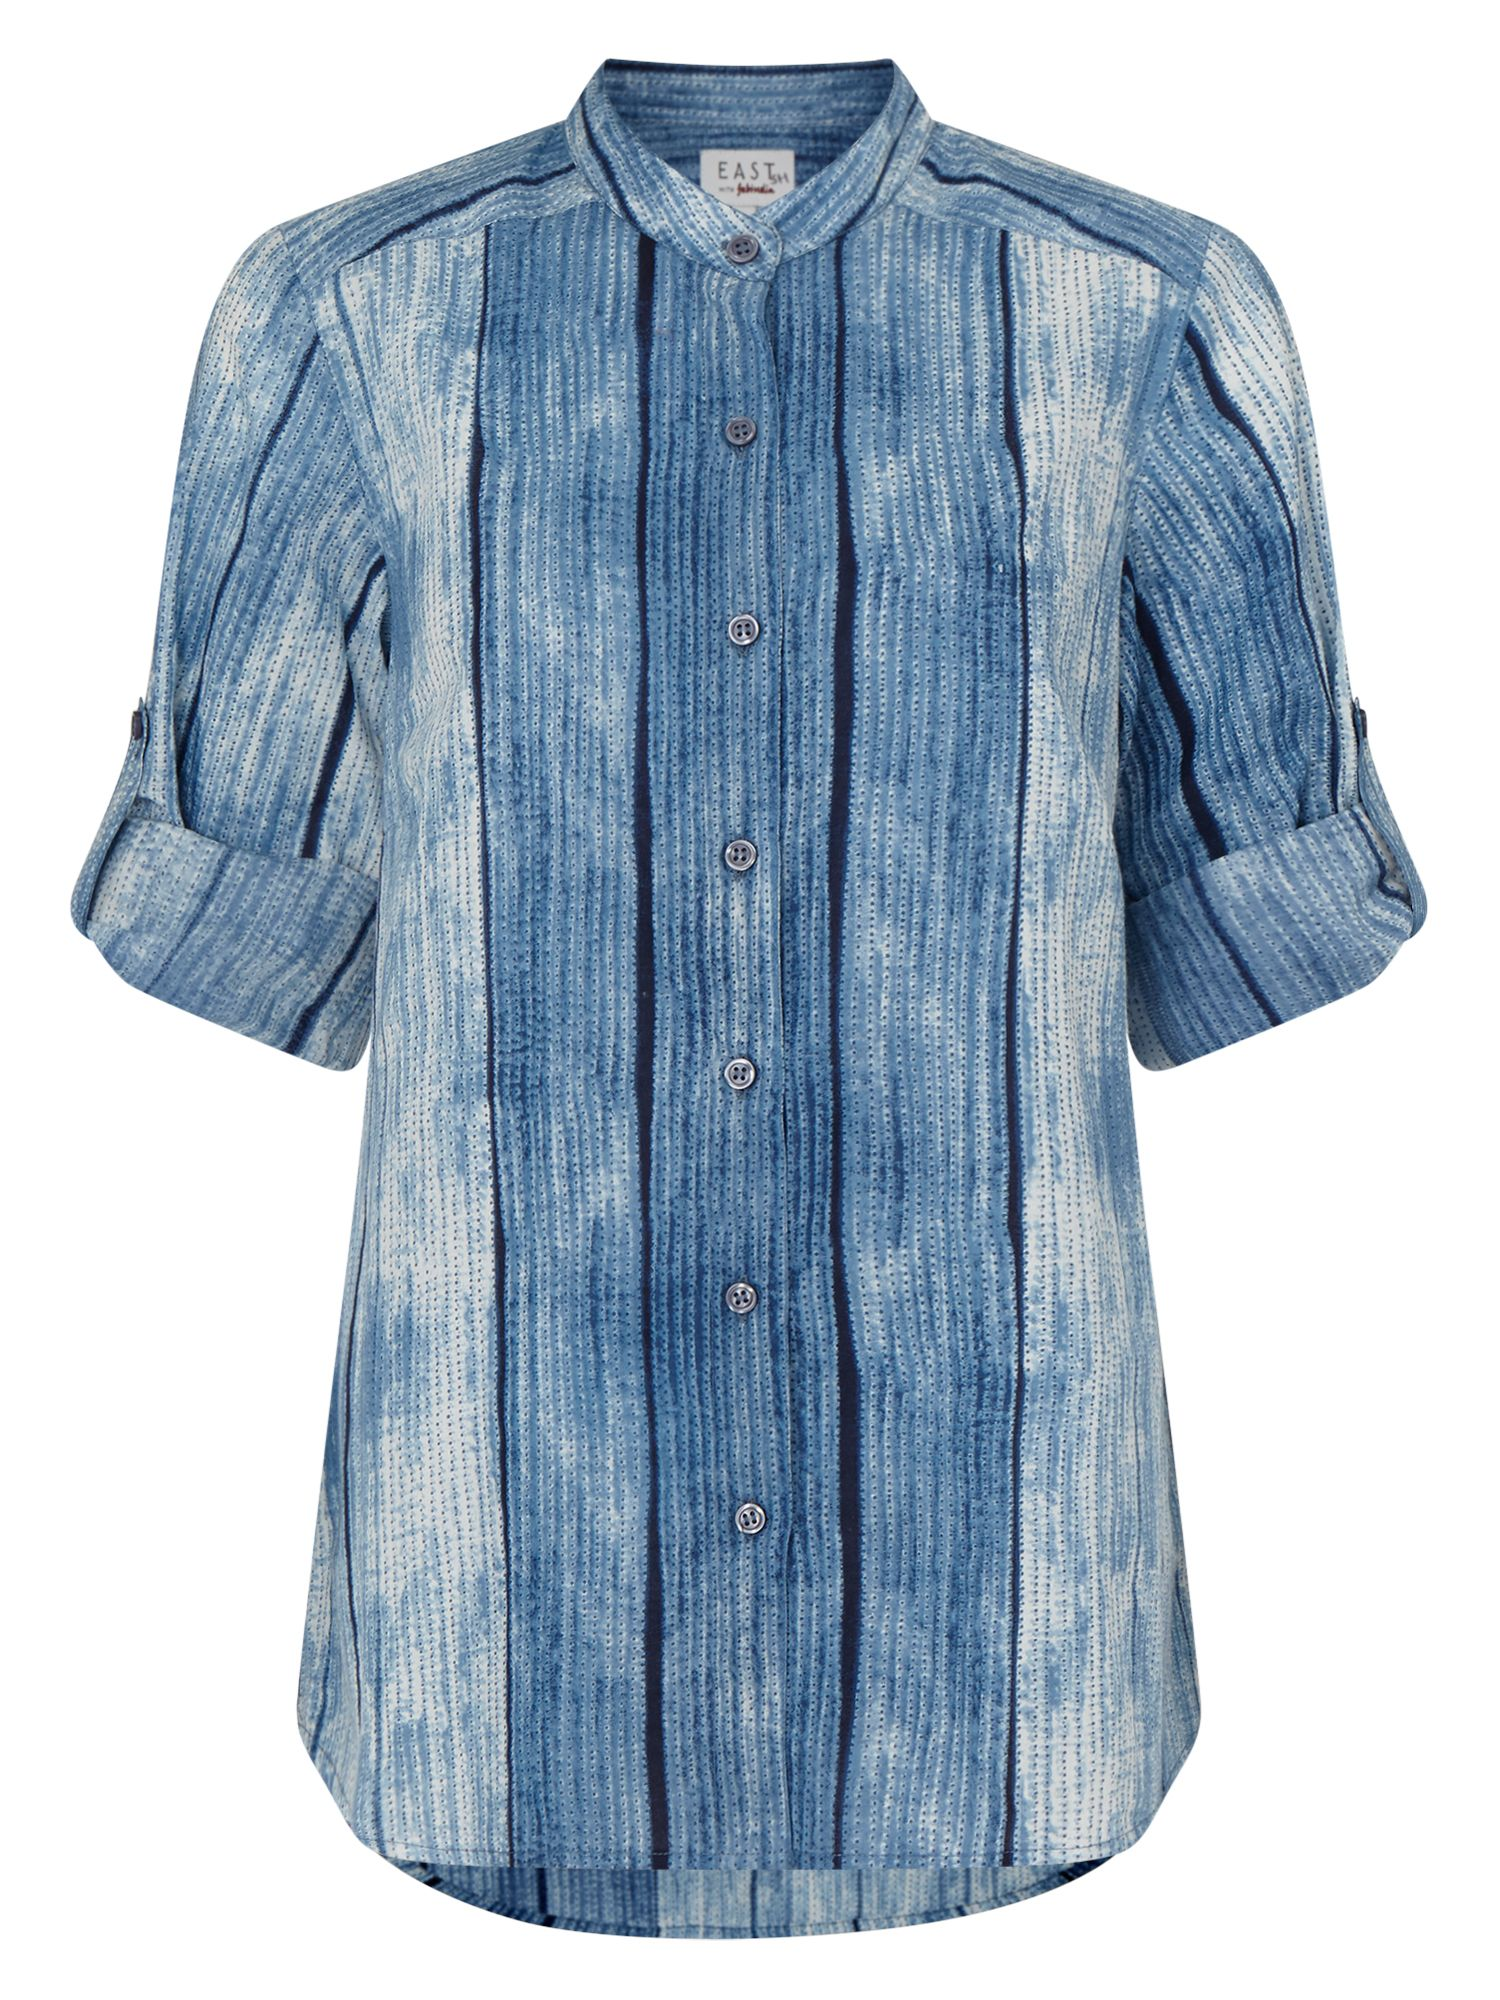 East Shibori Print Pocket Shirt, Indigo